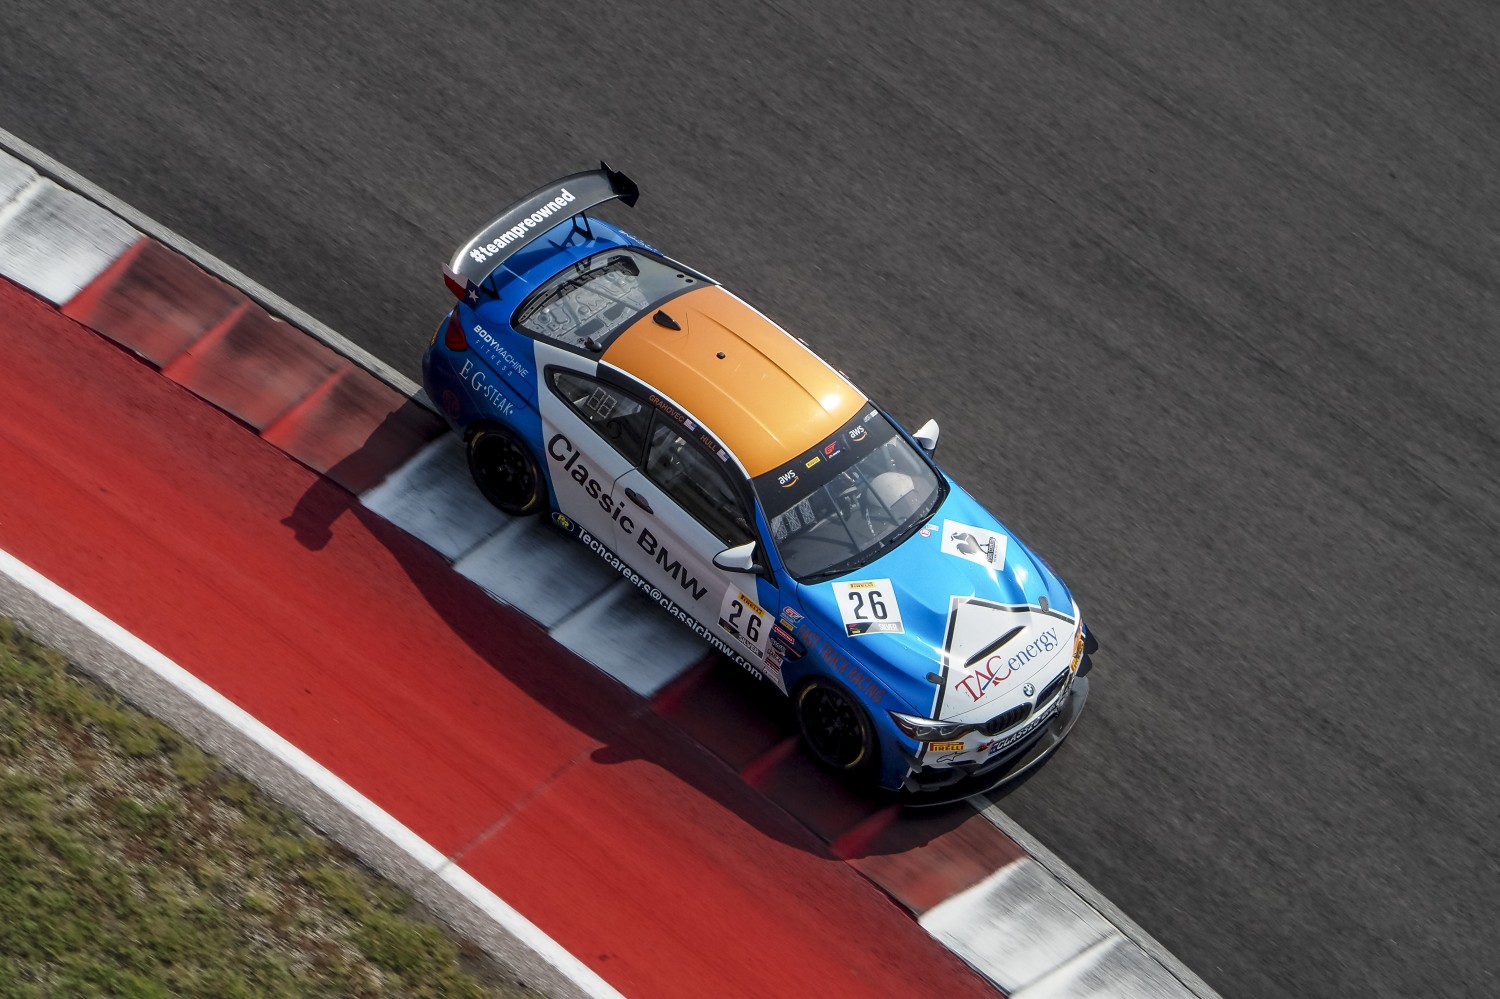 #26 BMW M4 GT4 of Chandler Hull and Toby Grahovec, Classic BMW, GT4 SprintX Pro-Am, SRO America, Circuit of the Americas, Austin TX, September 2020.  | Brian Cleary/SRO